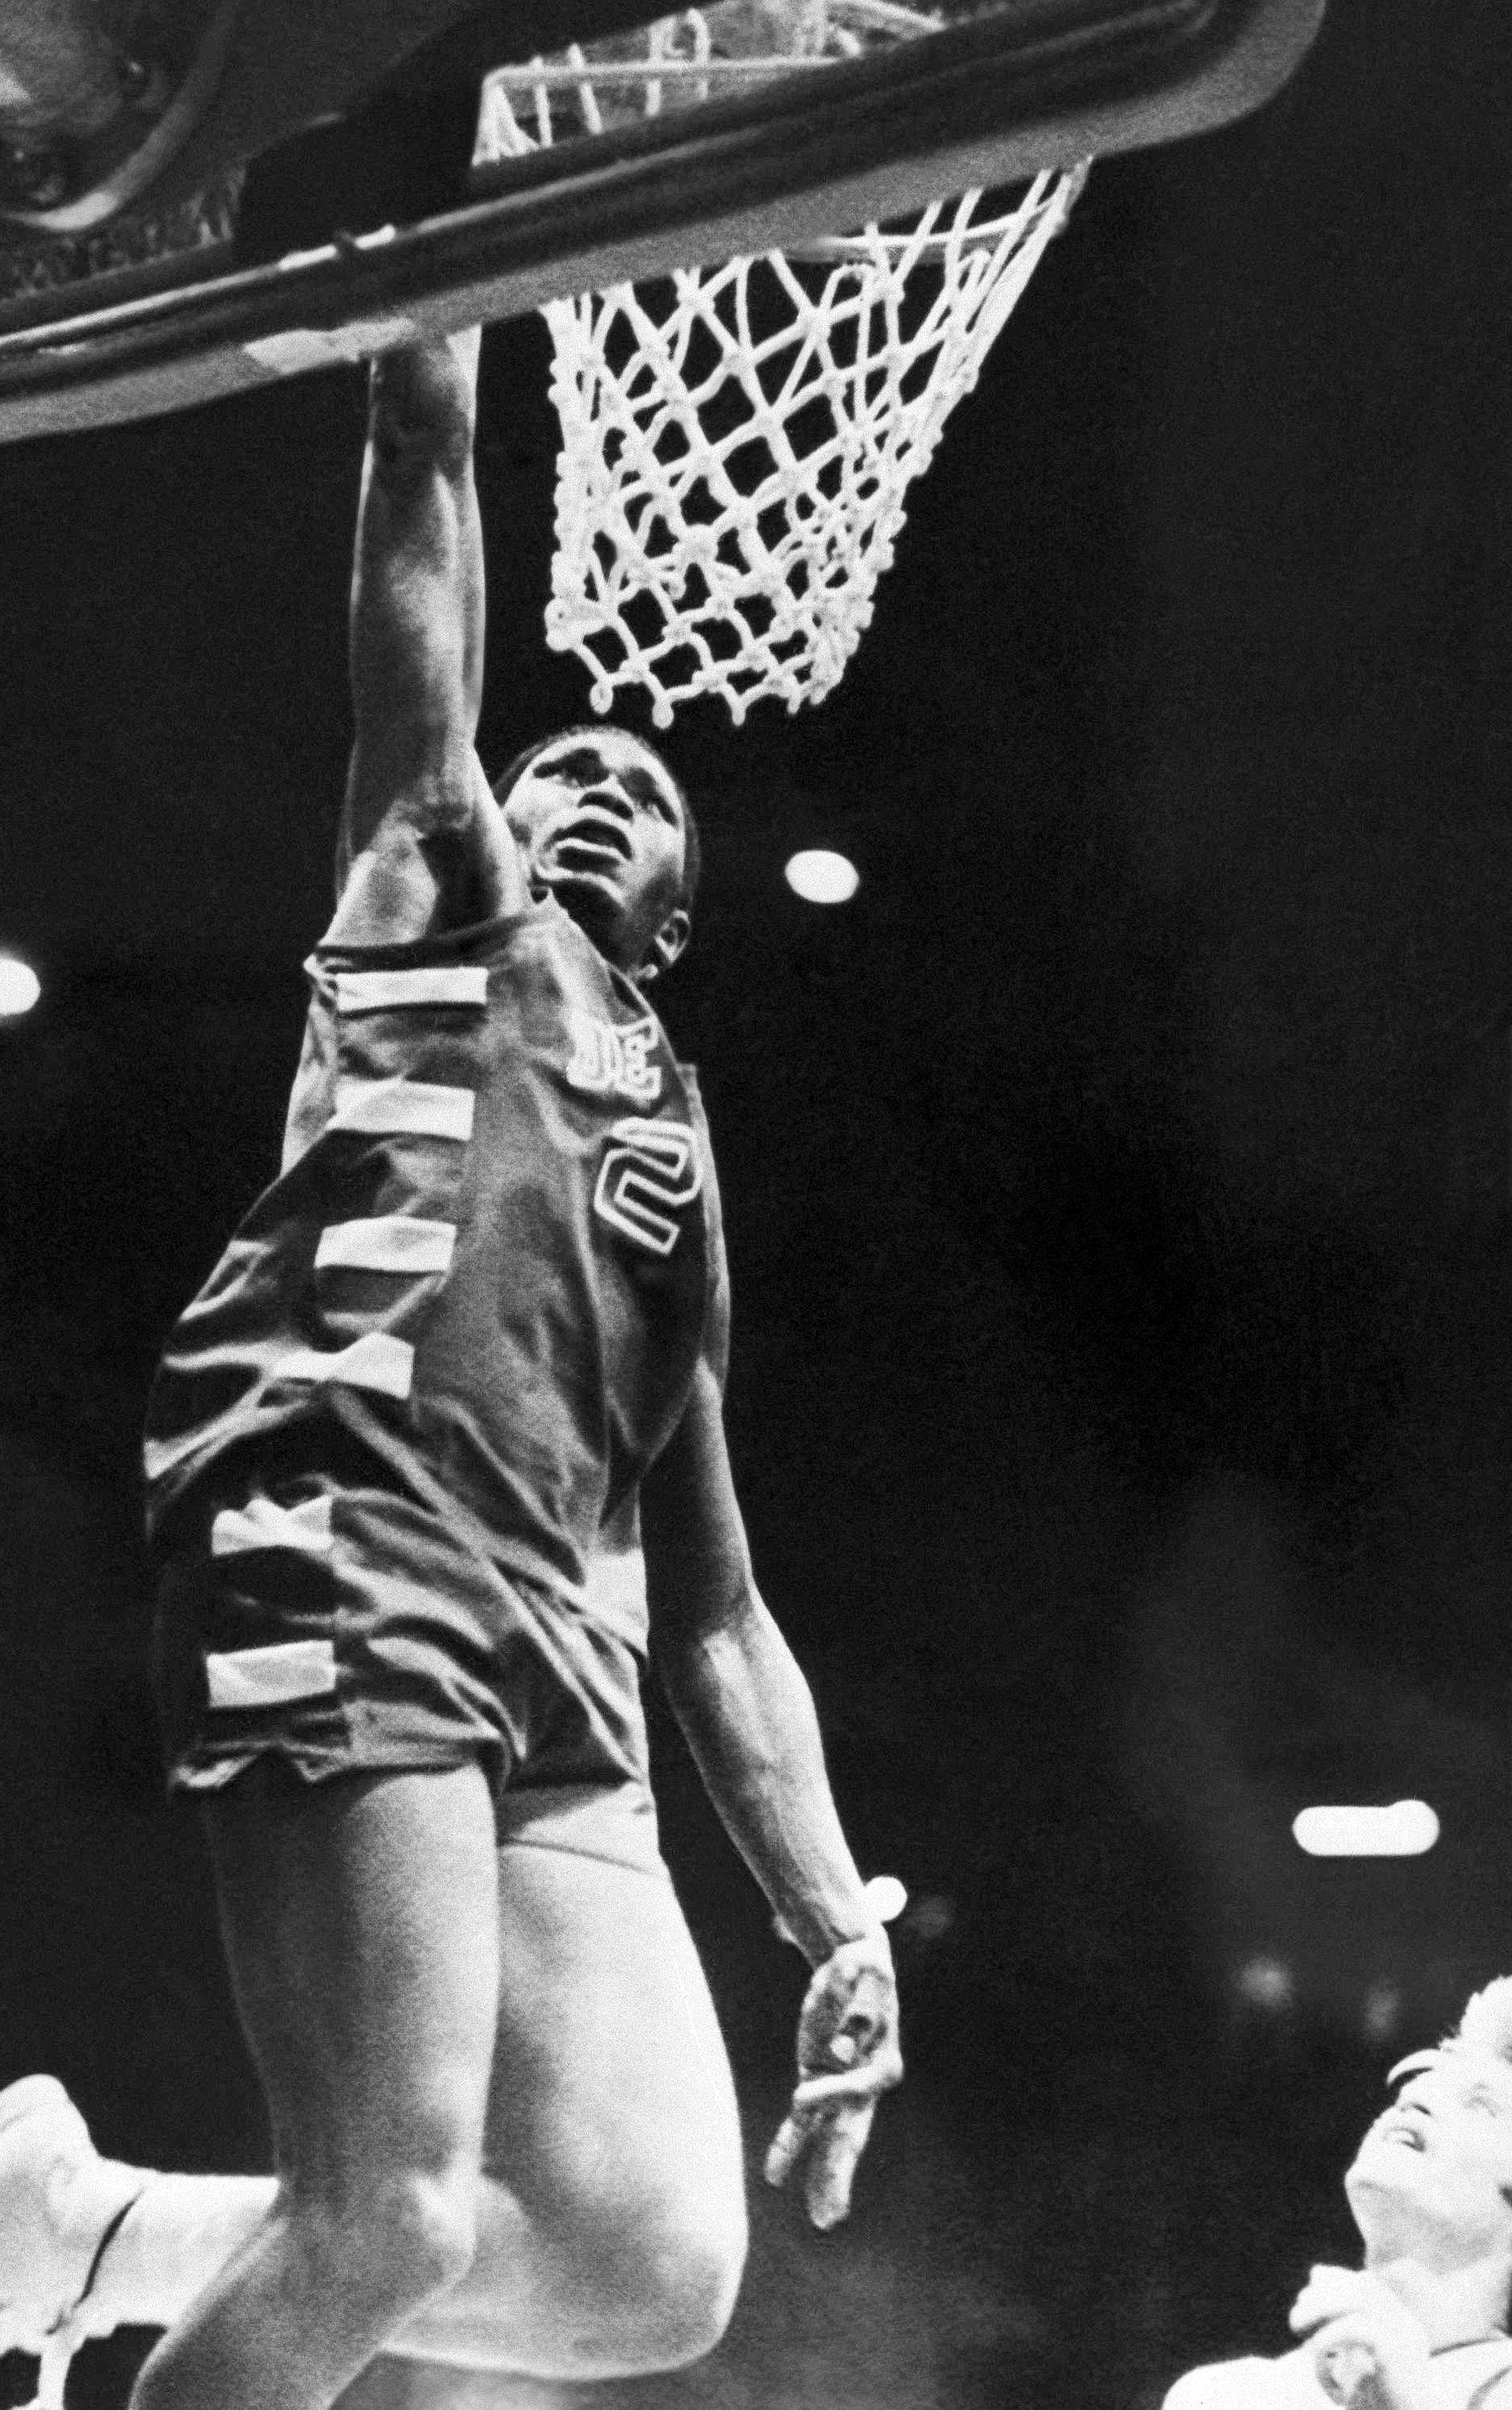 DePaul All-American Mark Aguirre floats up to score against Butlers Tim McRoberts durng a 1981